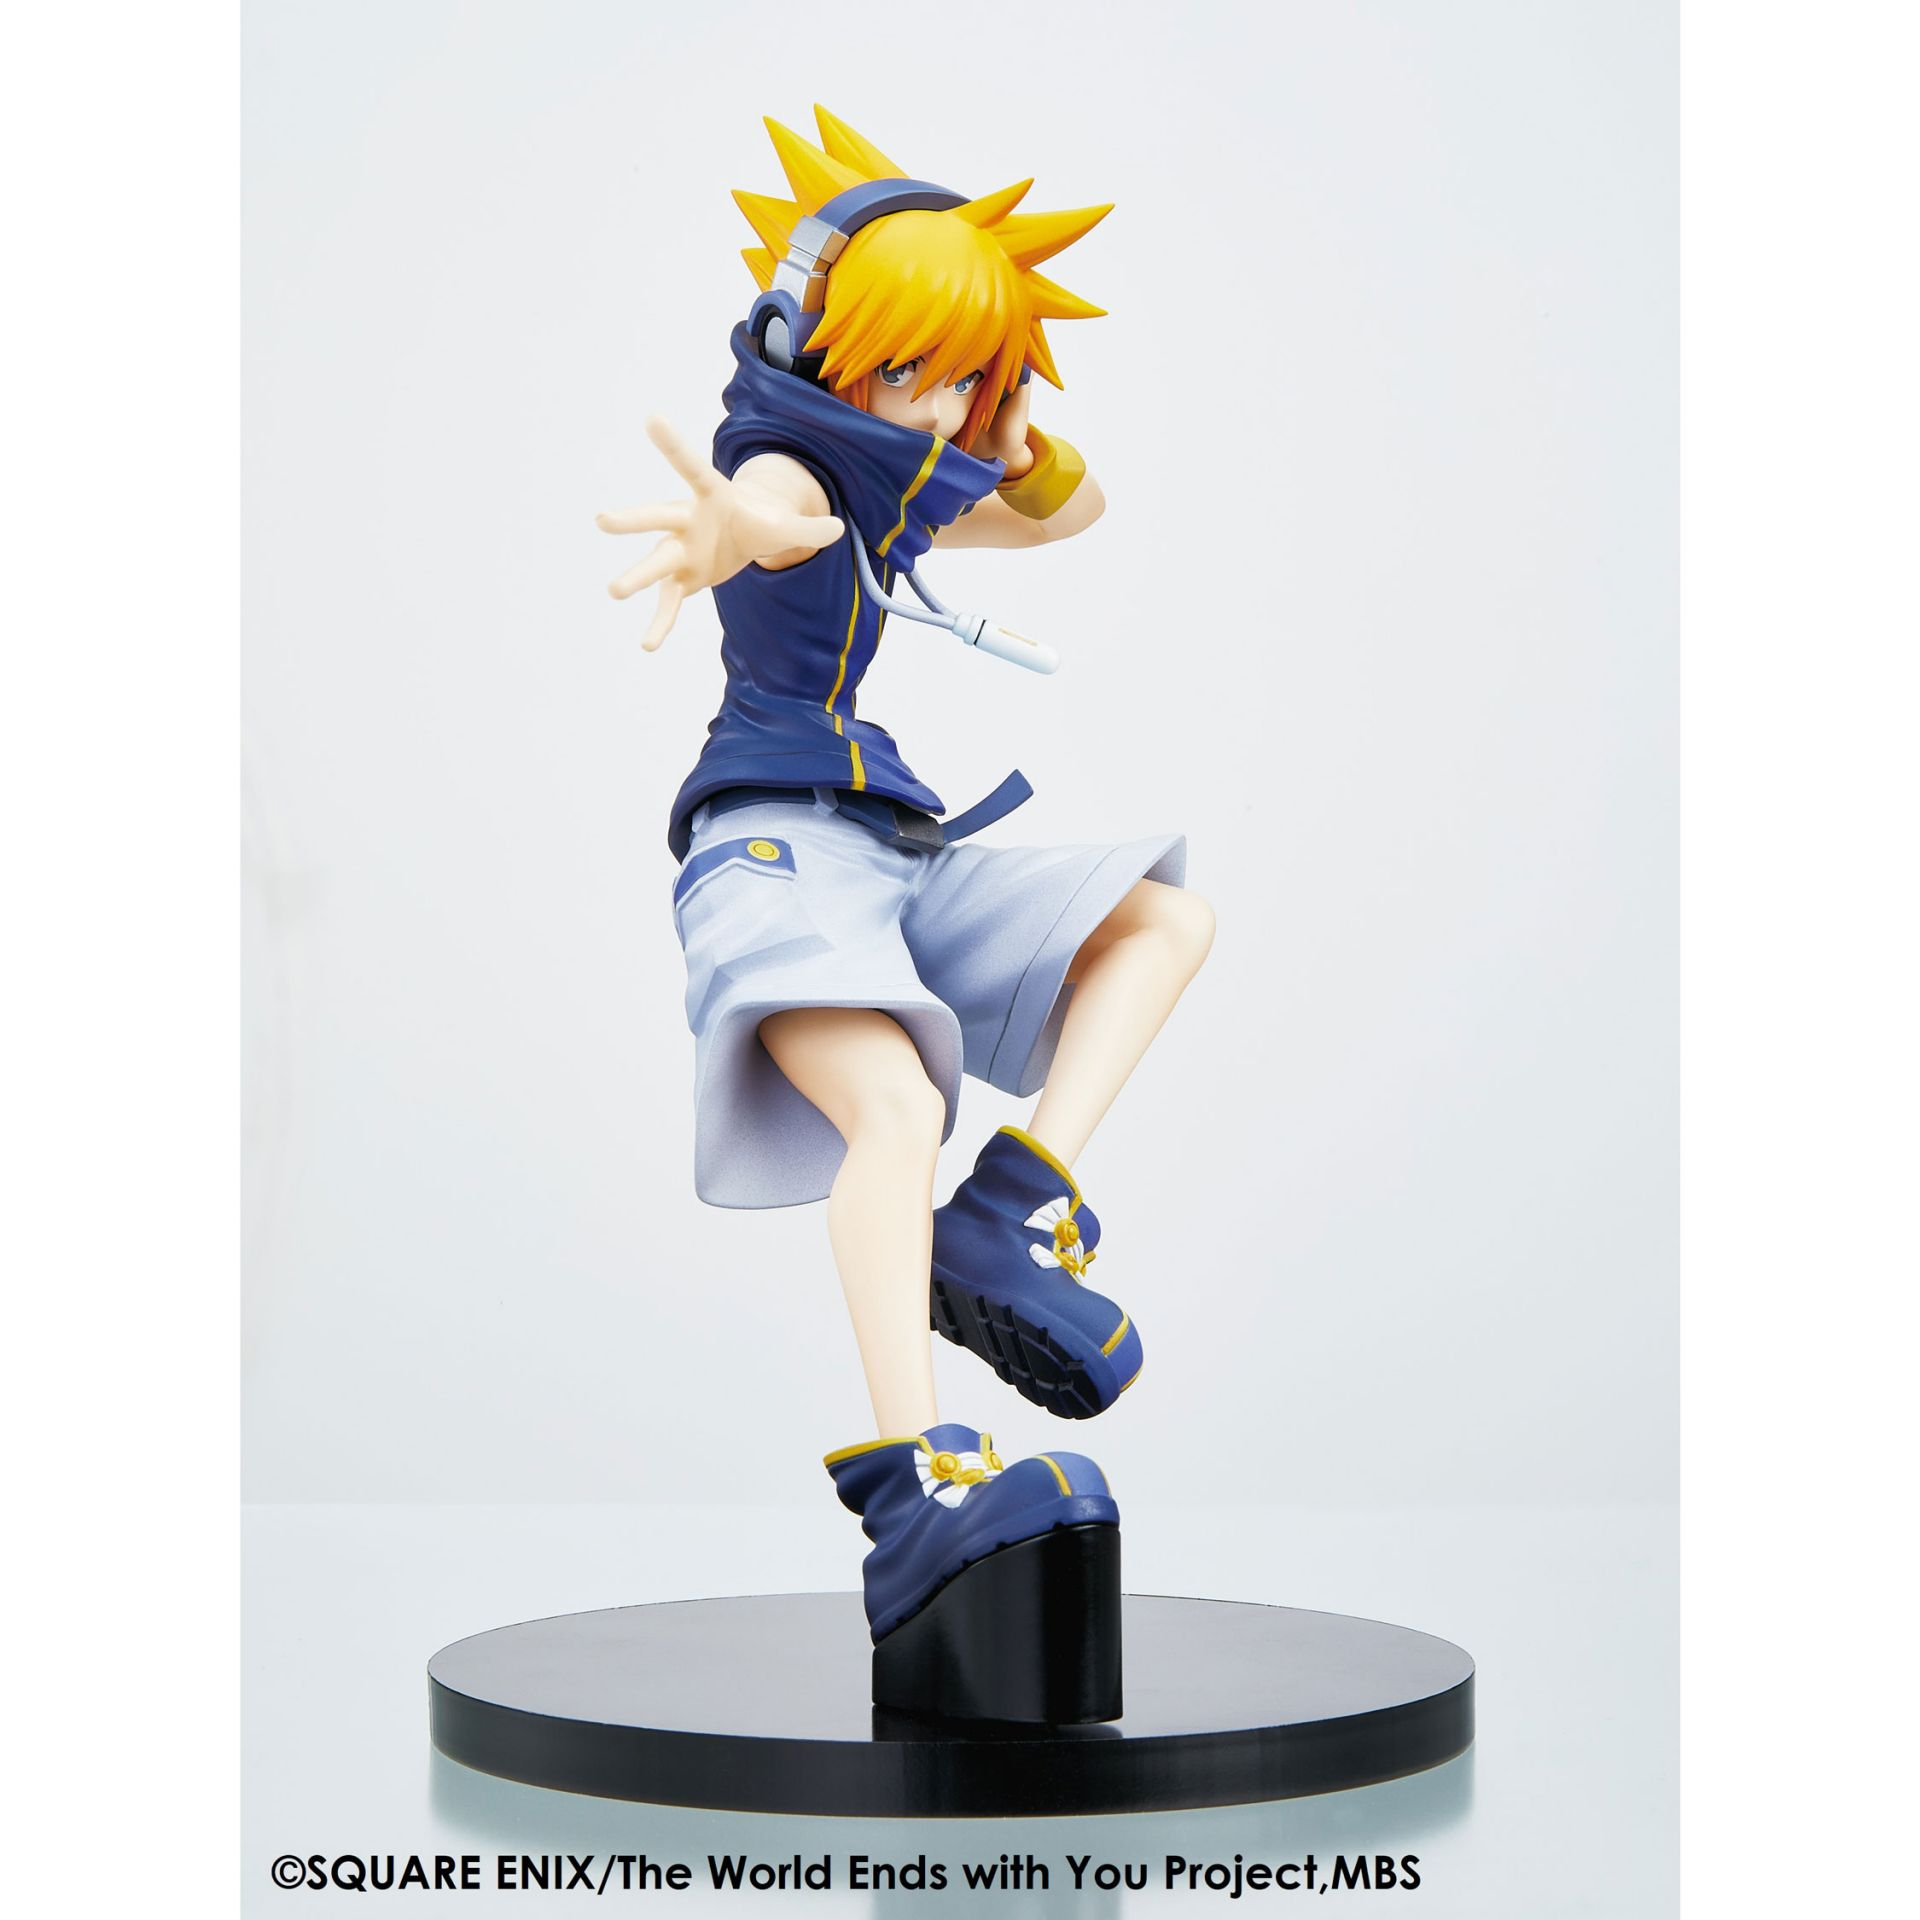 Square Enix Neku The World Ends with You Figure